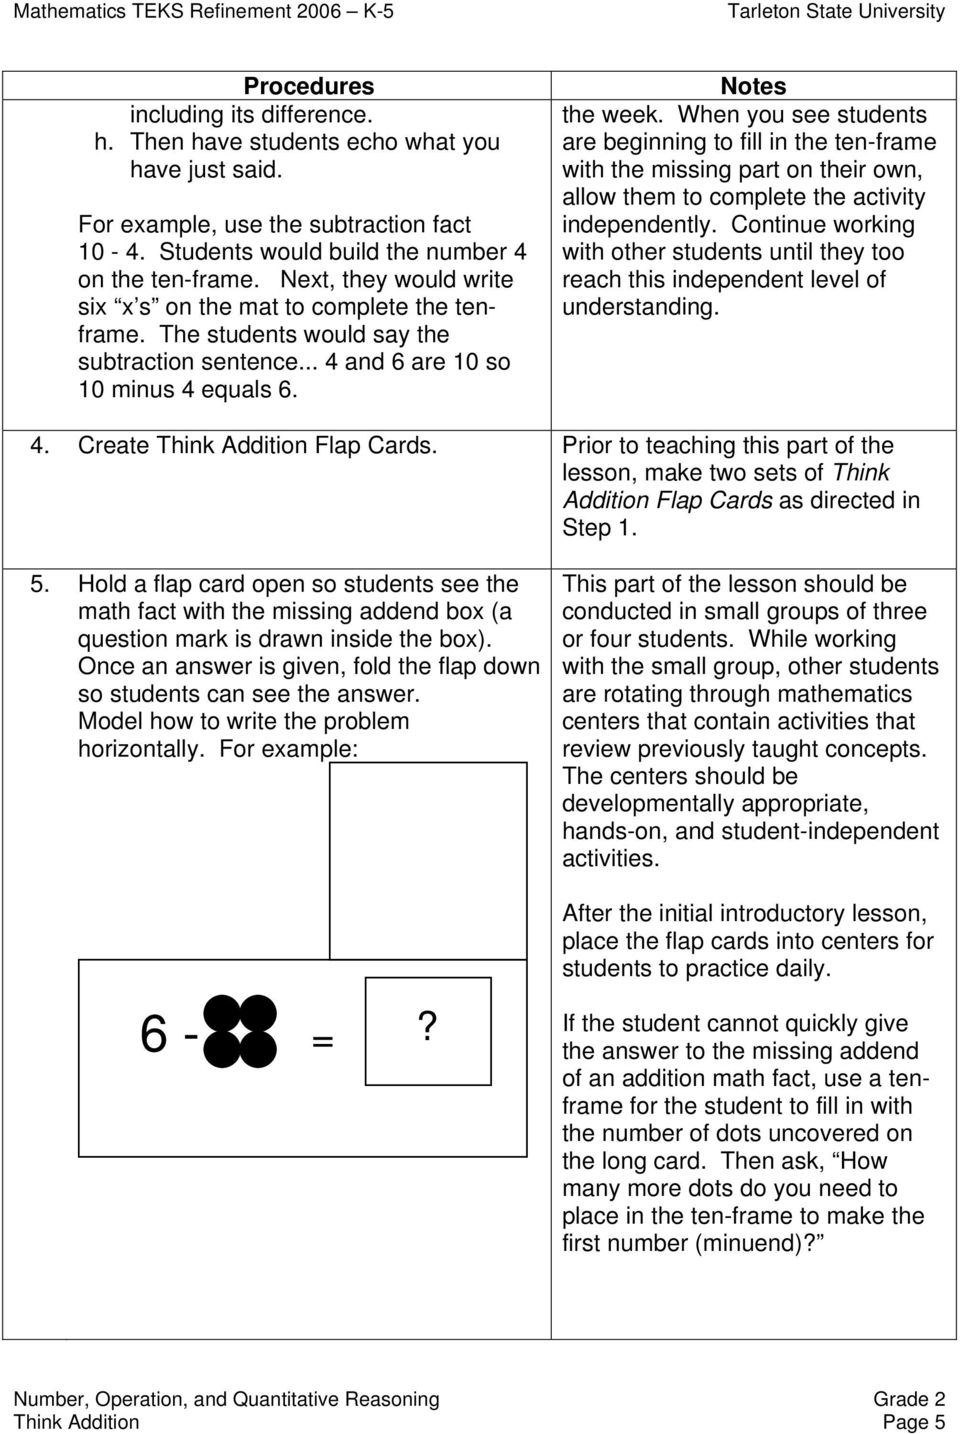 When you see students are beginning to fill in the ten-frame with the missing part on their own, allow them to complete the activity independently.